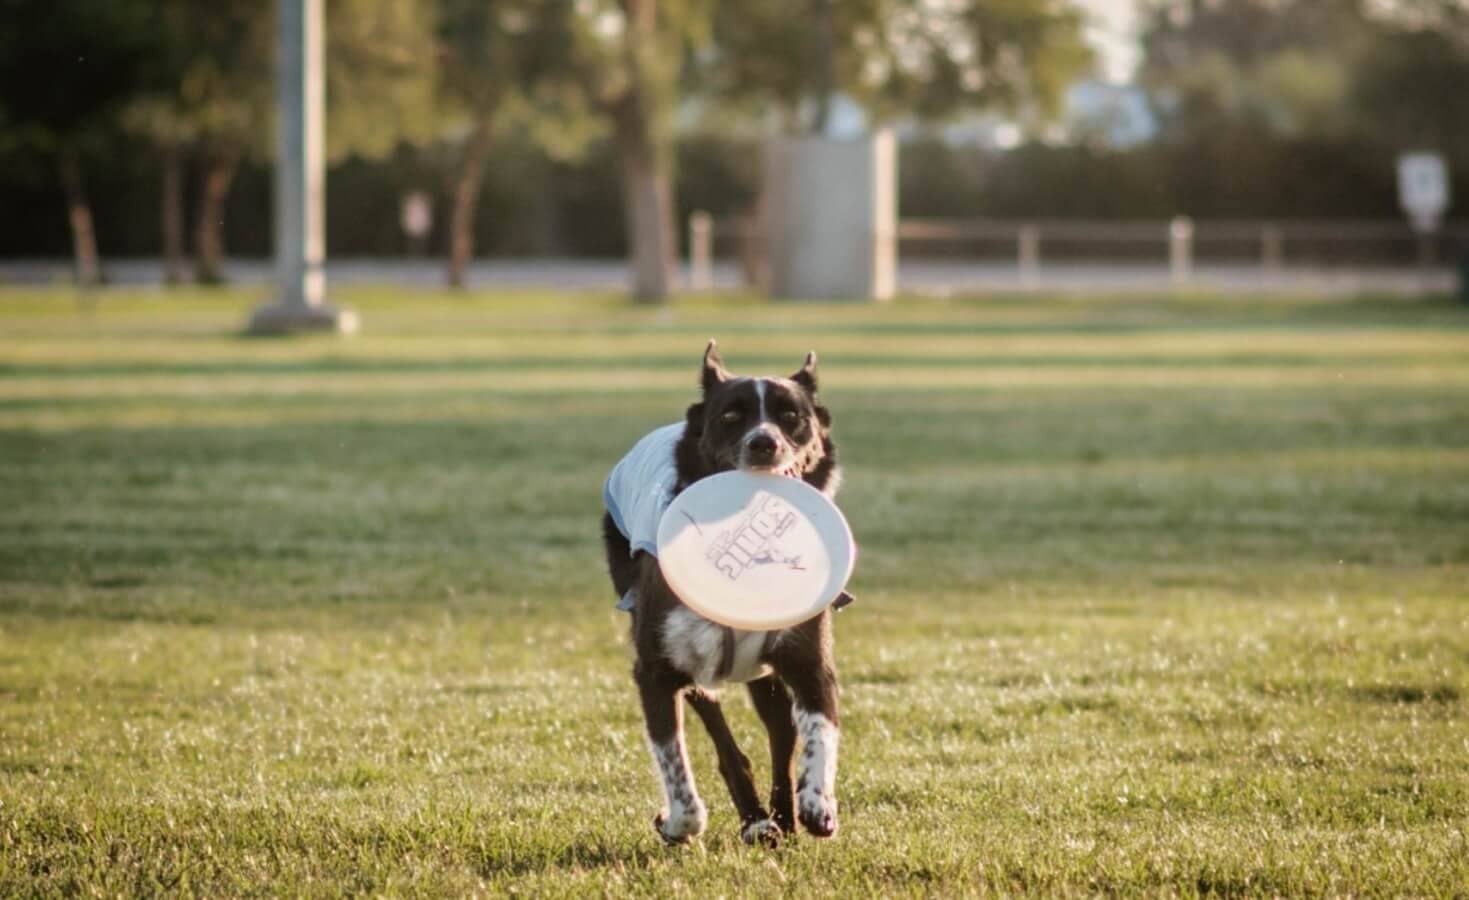 A dog runs towards the camera through an open field with a frisbee in his mouth